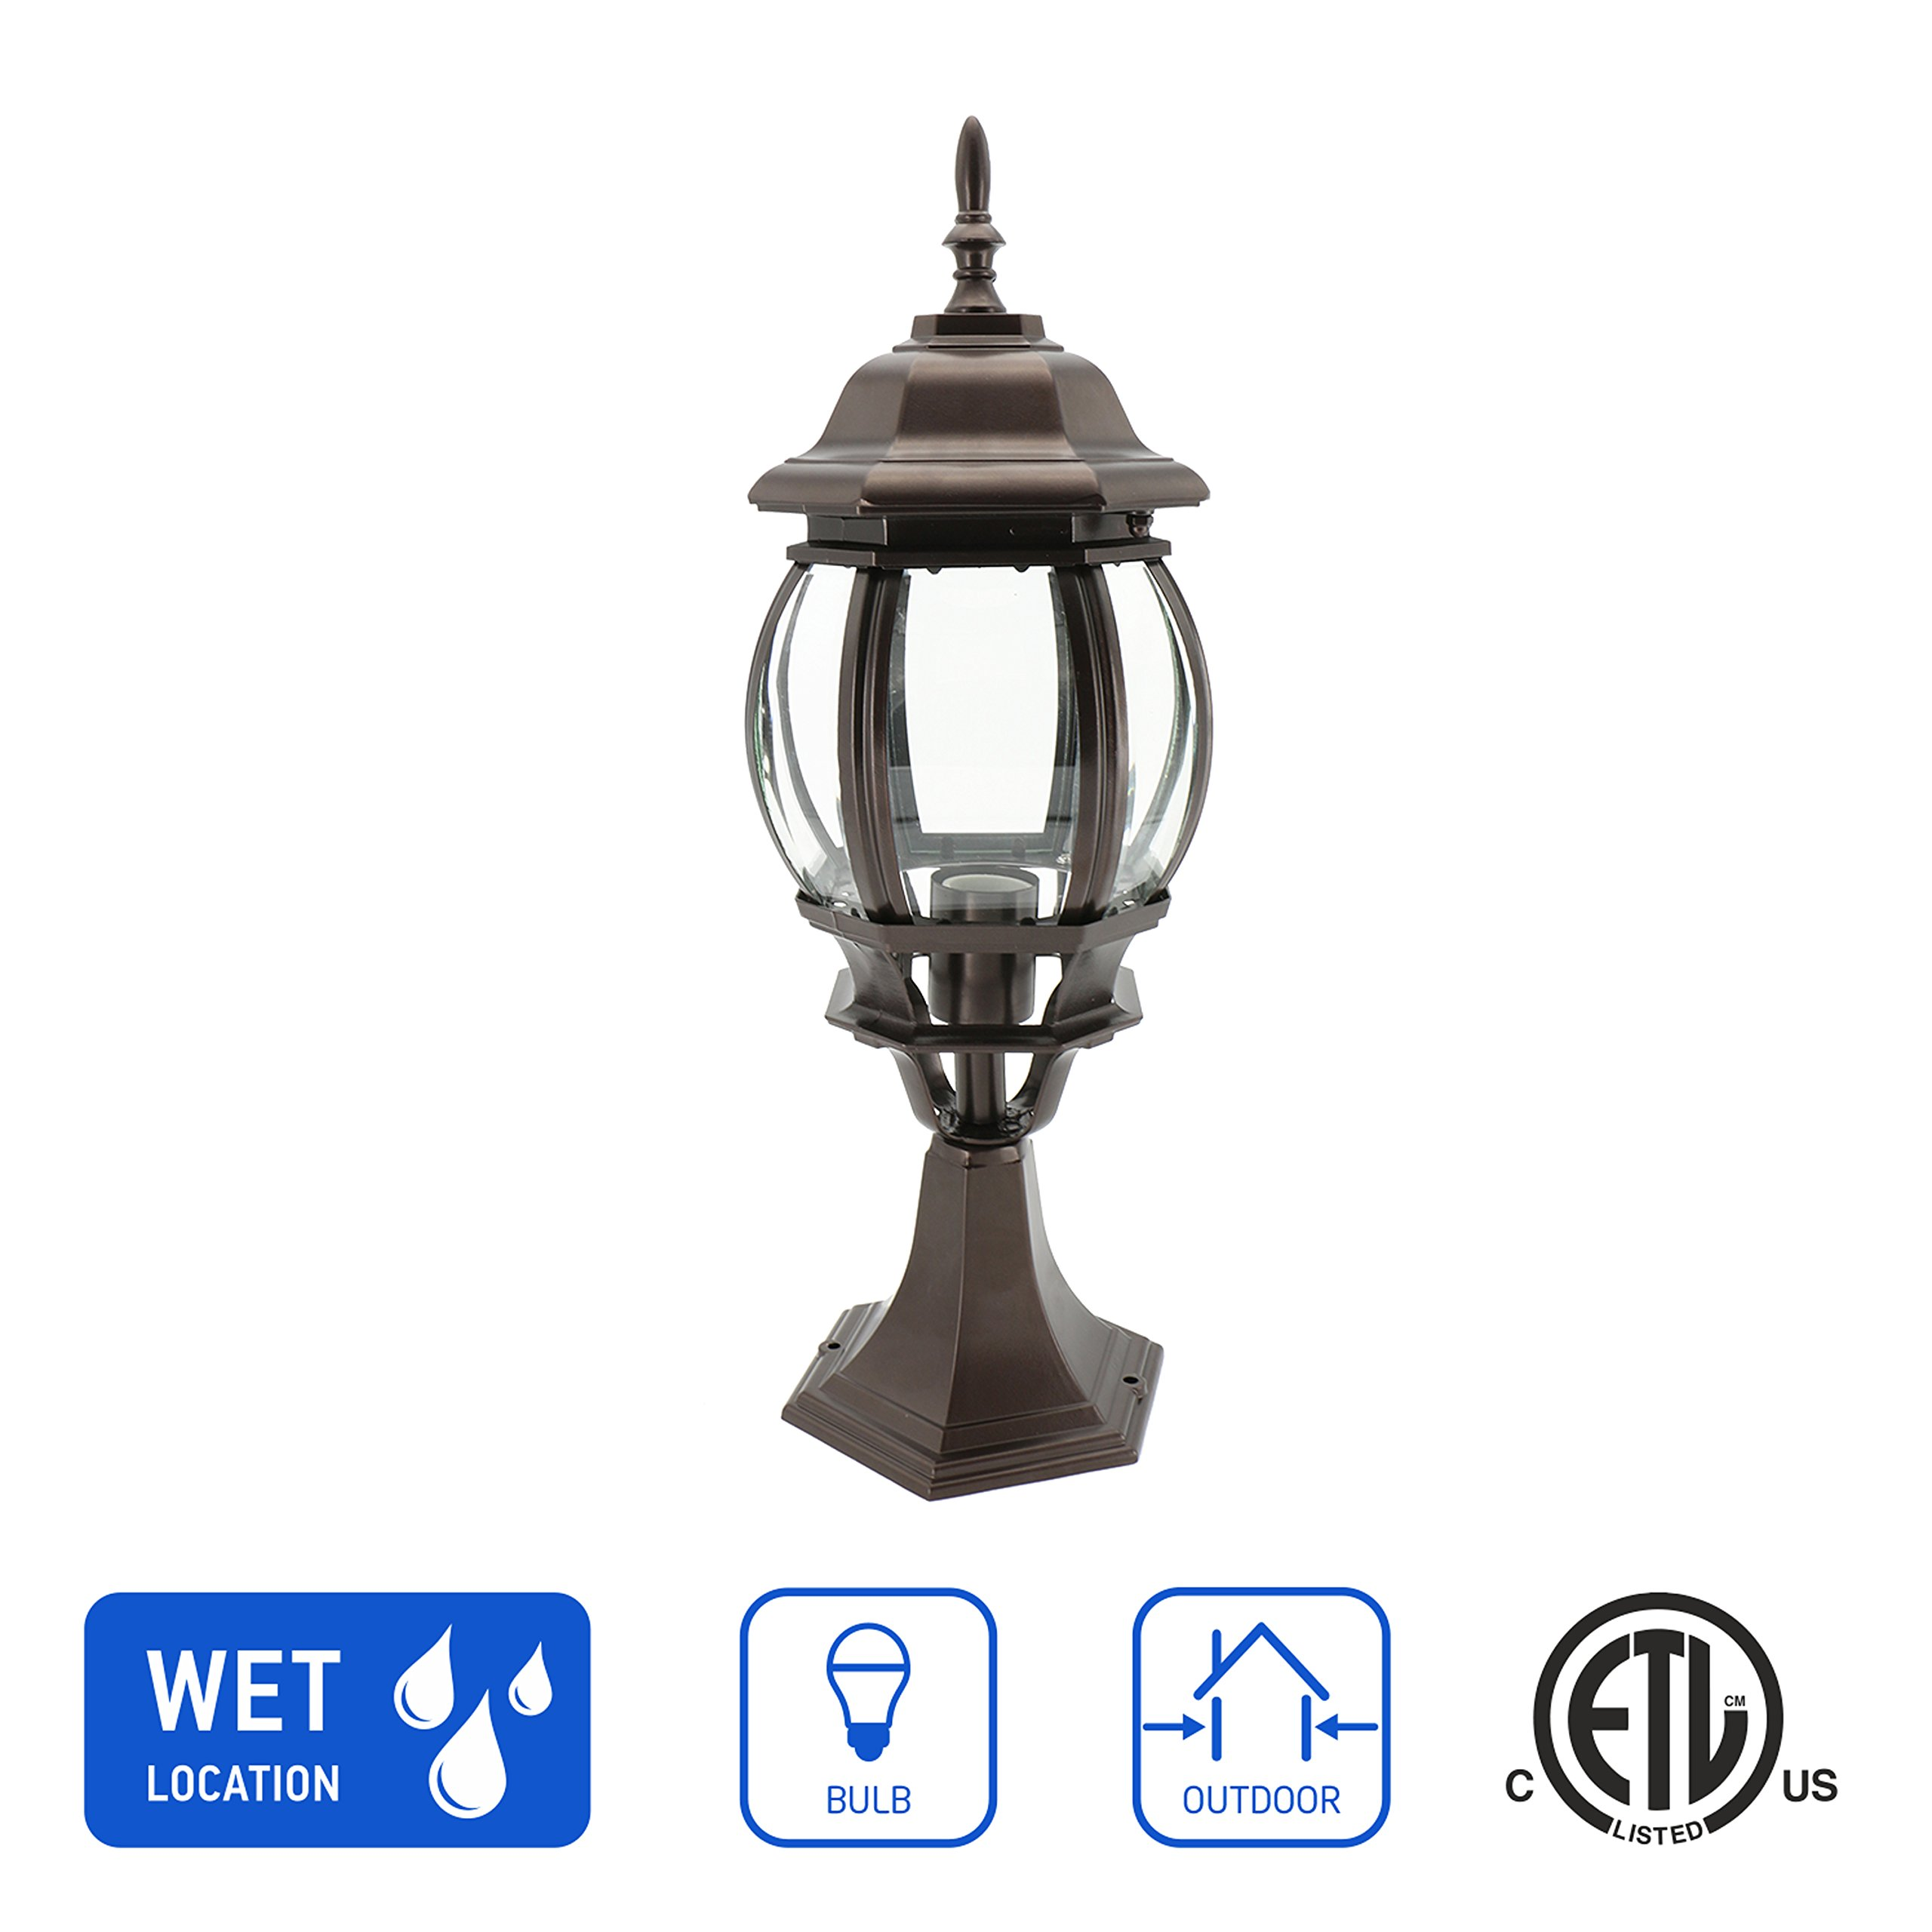 in Home 1-Light Outdoor Post Lantern L08 Series Traditional Design Bronze Finish Clear Glass Shade, ETL Listed